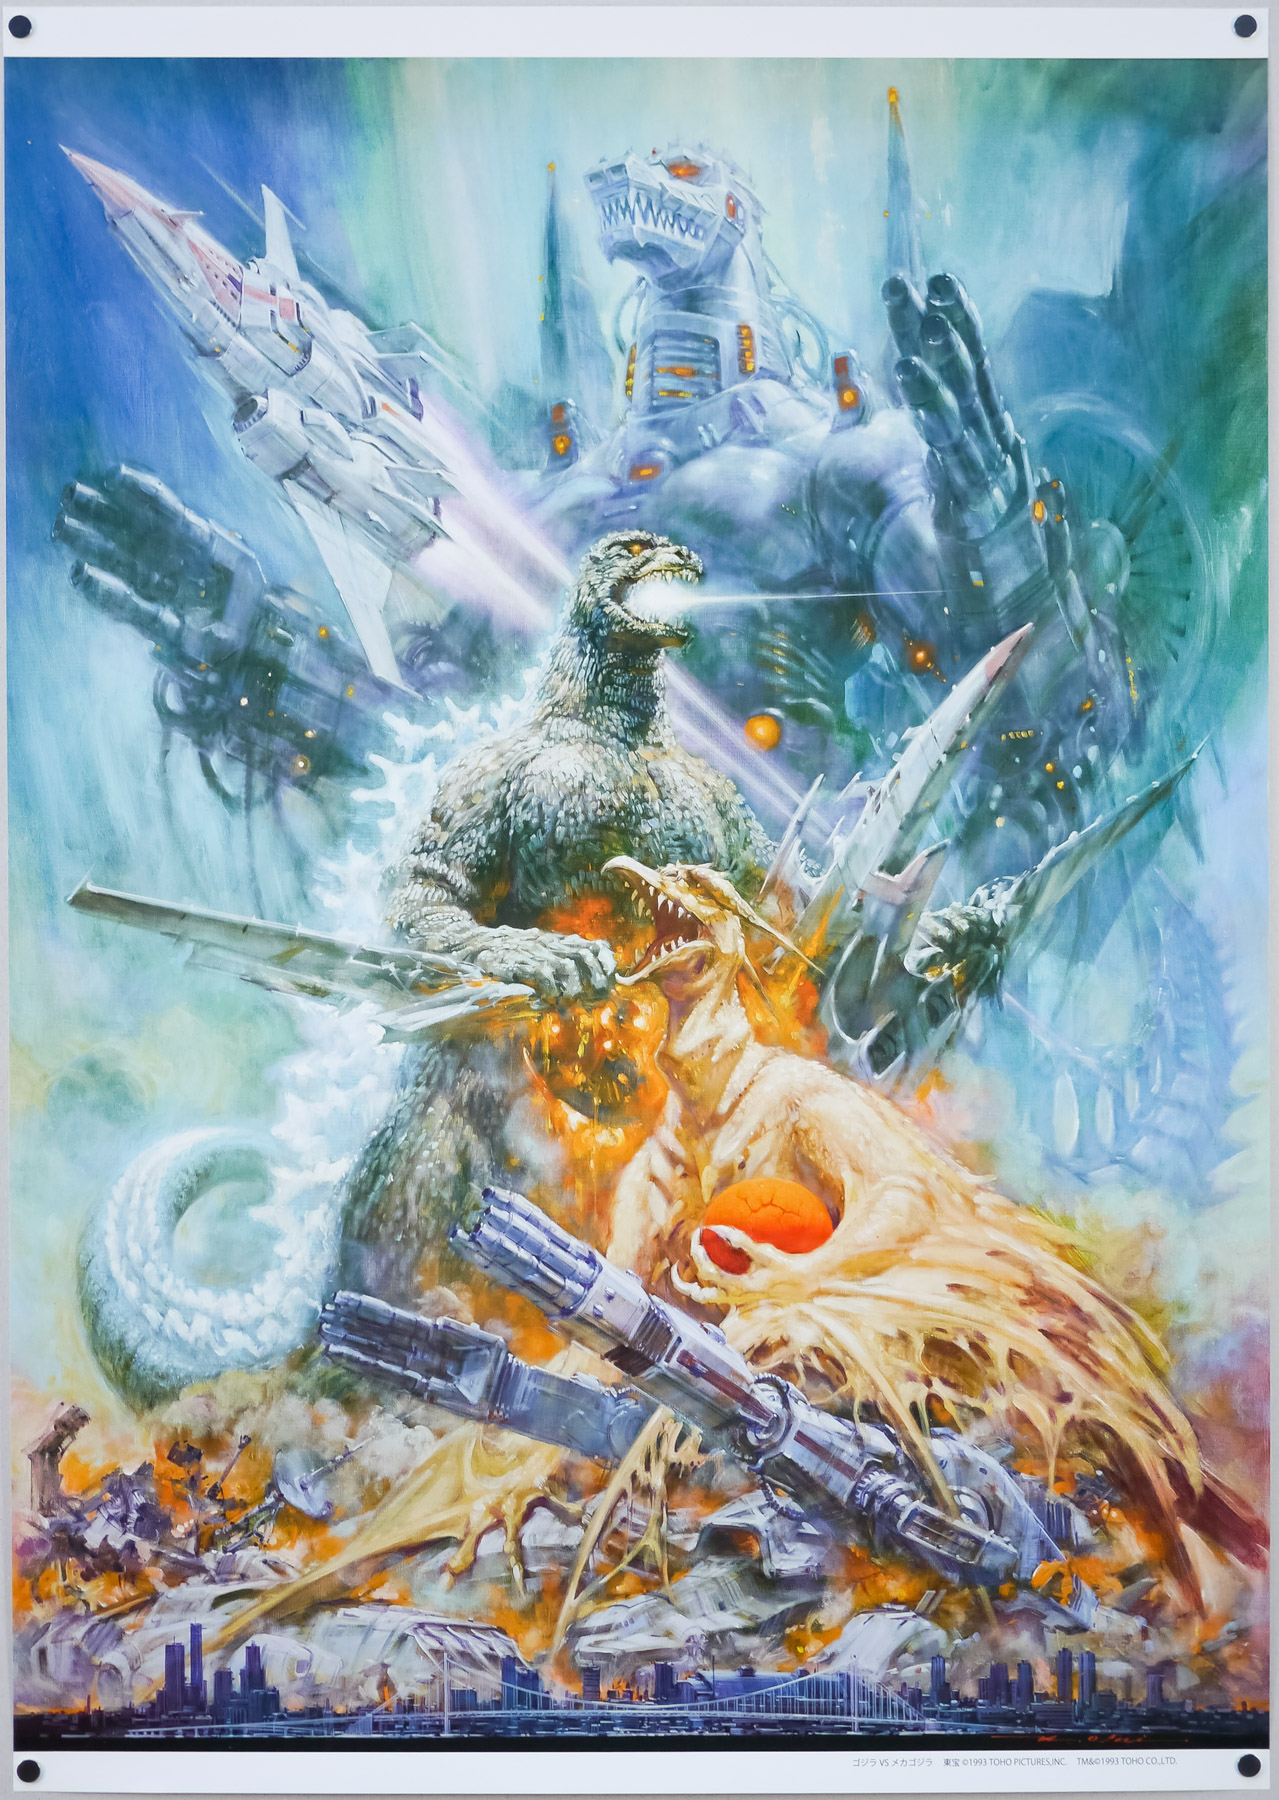 A print of the original artwork for a Godzilla vs Mechagodzilla II painted by Noriyoshi Ohrai. The huge (around A1 size) original art was on display at the exhibition and this small print was available to buy in the shop.